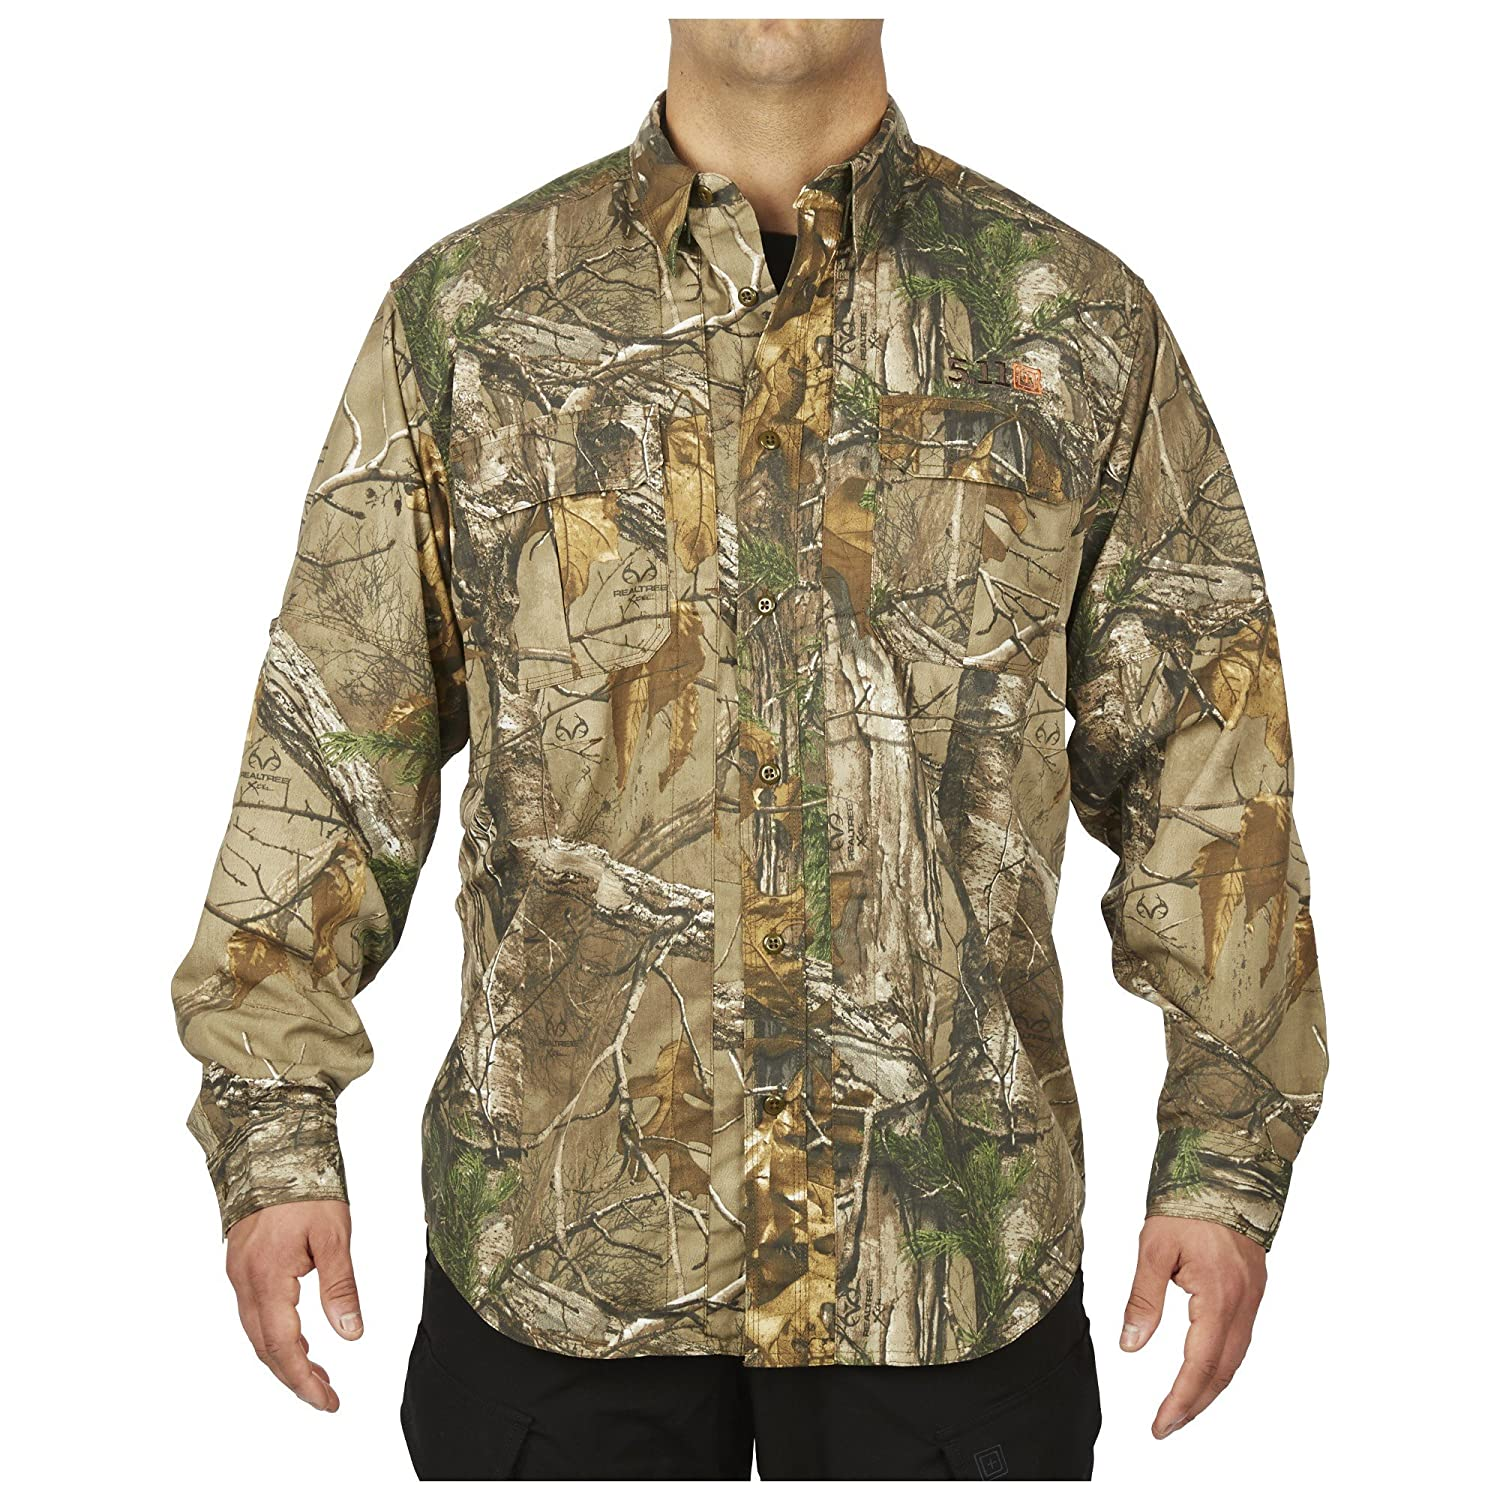 9987d7a5 Double fabric elbows on our Taclite camo shirts ensure maximum resilience.  All REALTREE camo shirts feature our patented 5.11 hidden document pockets